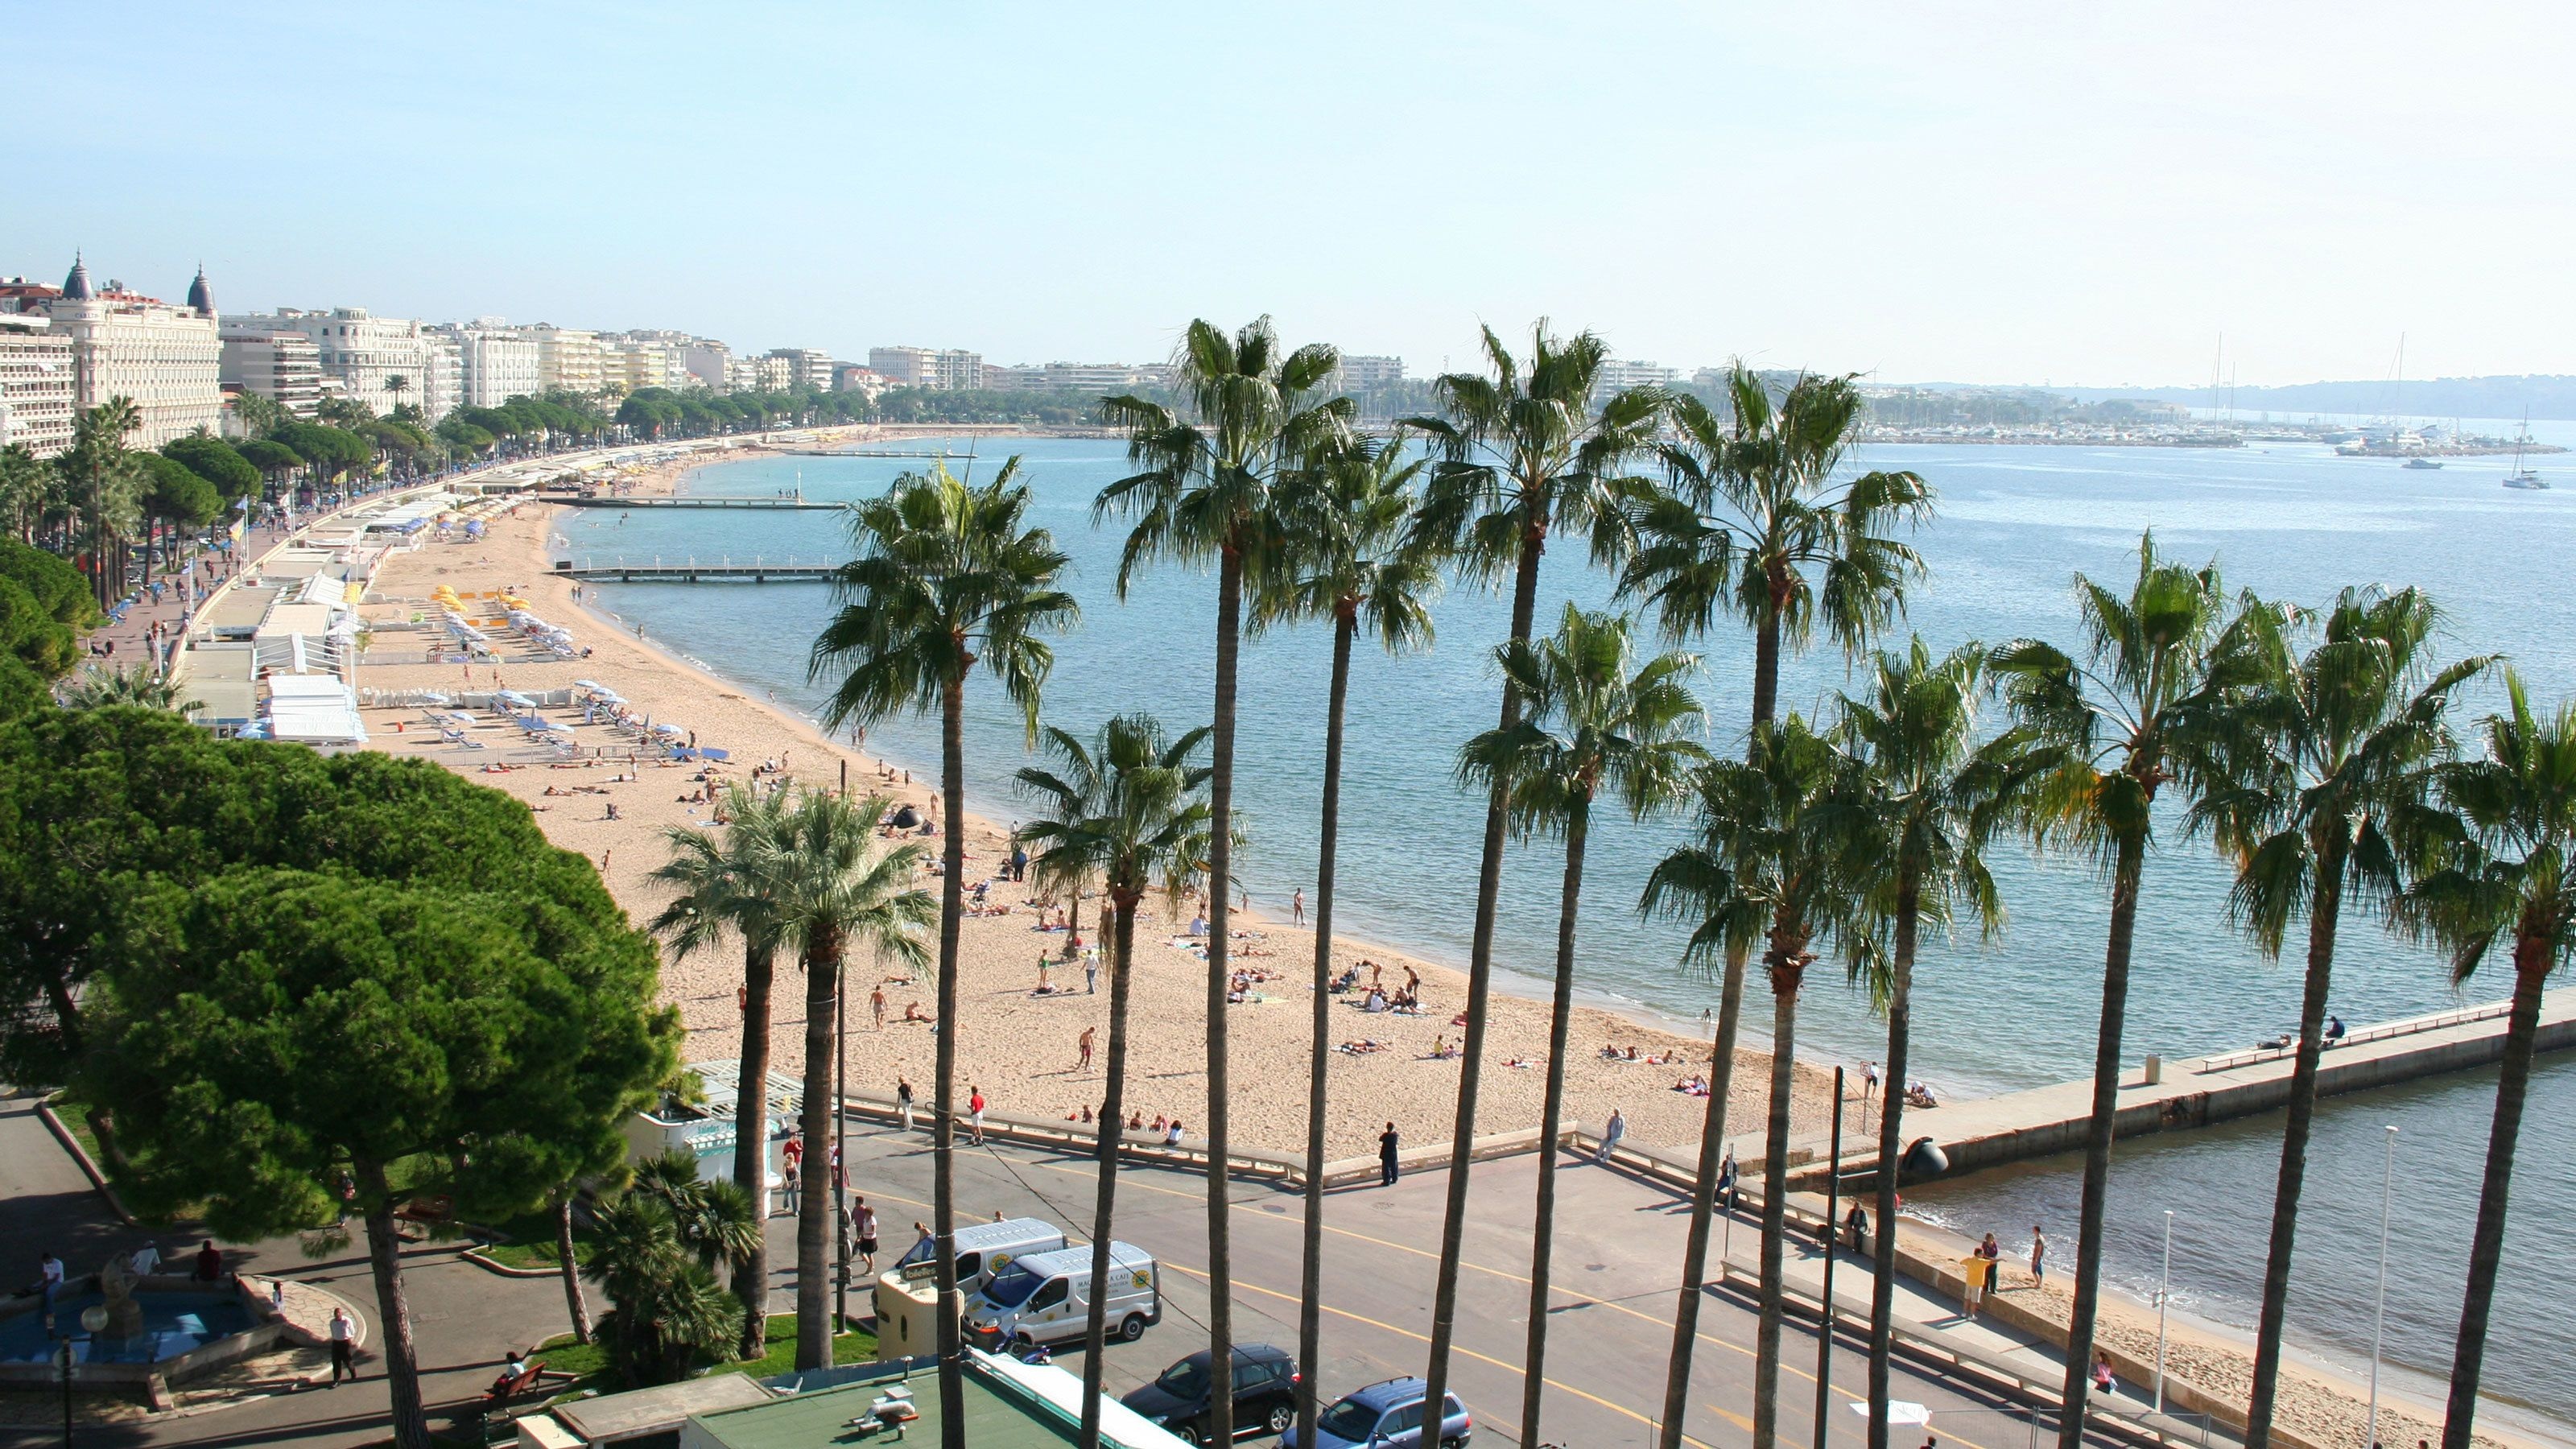 Serene view overlooking Cannes